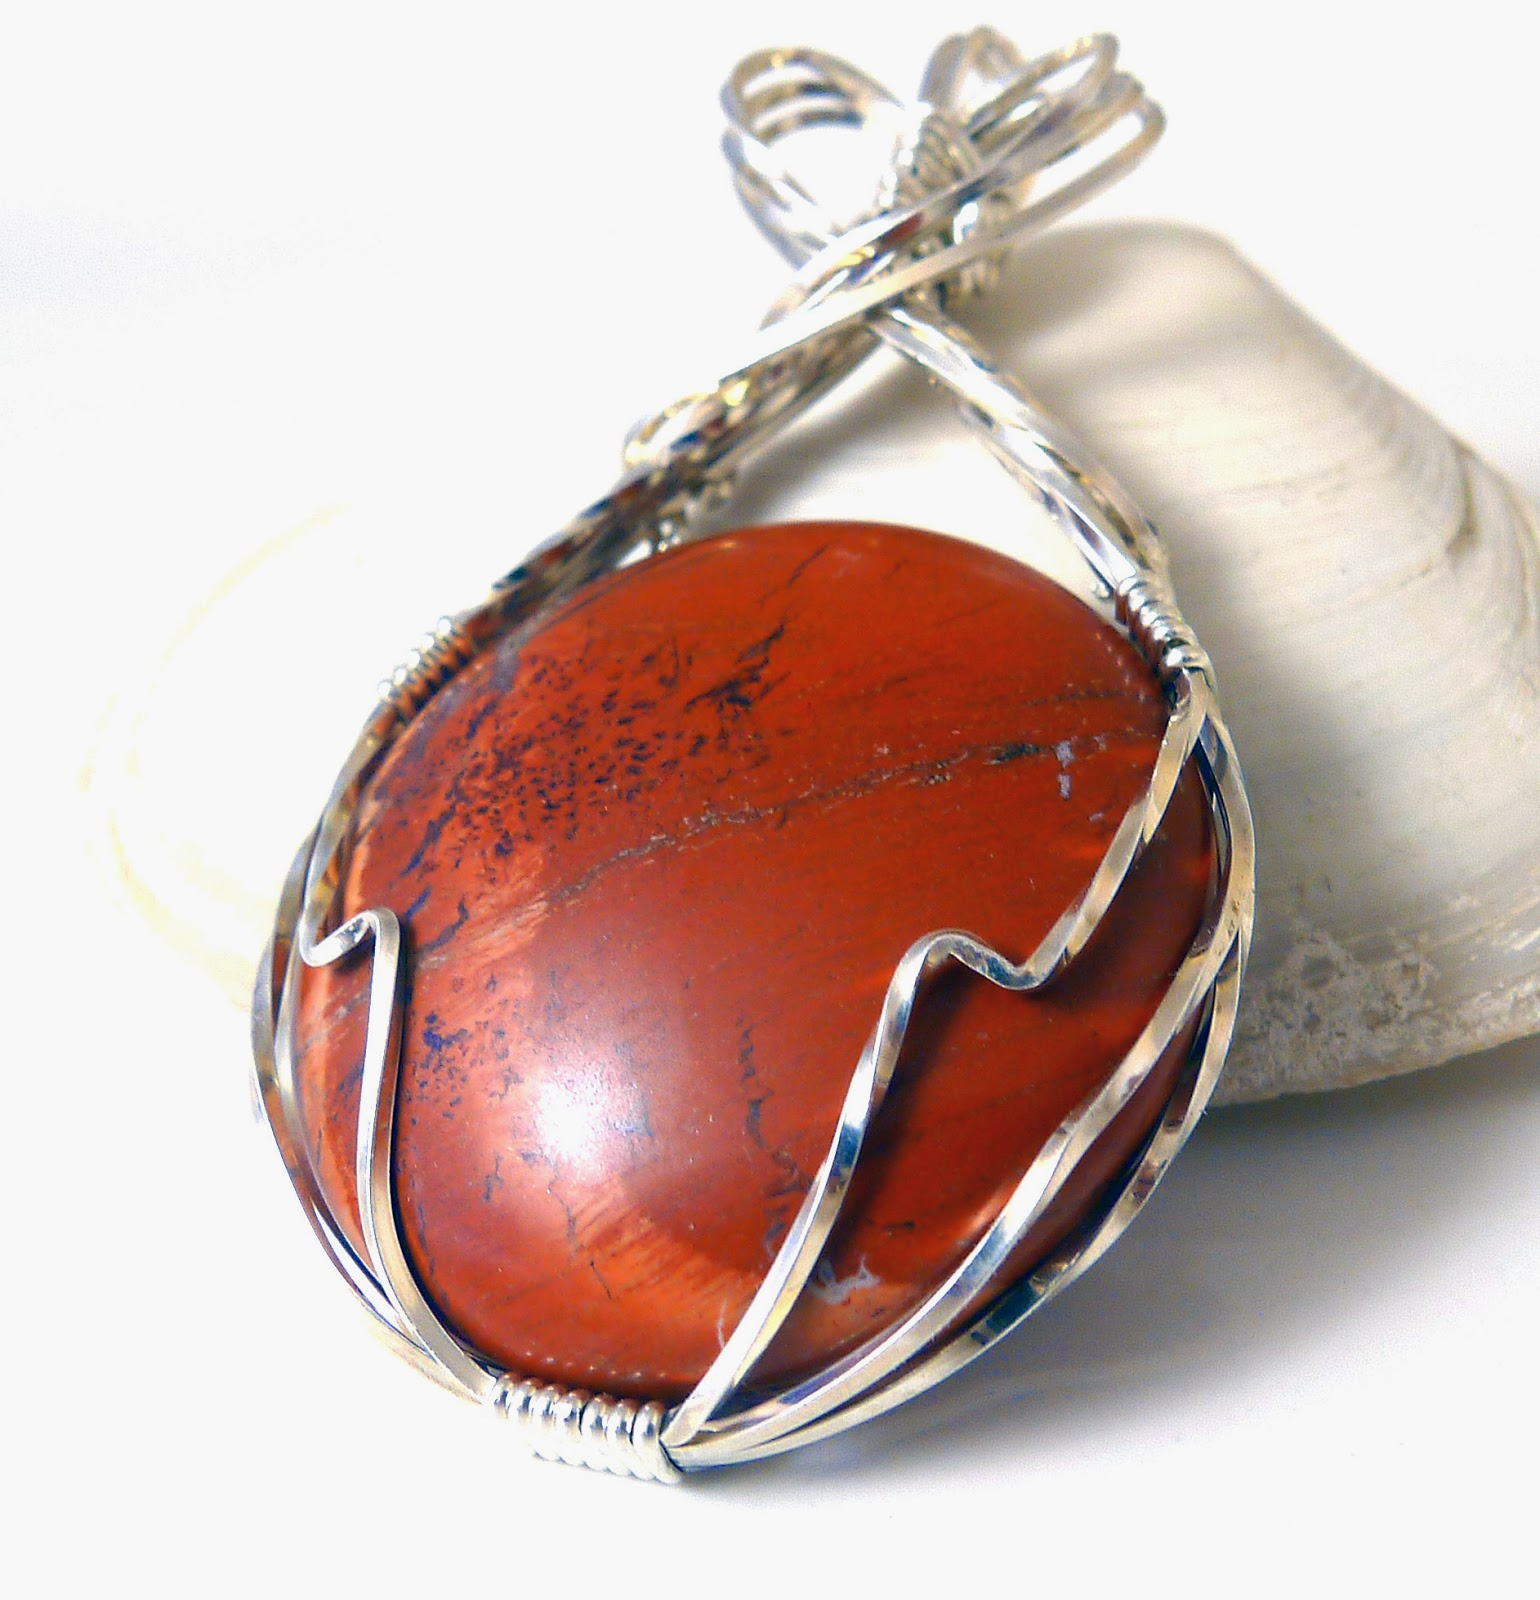 http://www.shazzabethcreations.co.nz/#!product/prd1/2467244481/red-poppy-jasper-and-sterling-pendant